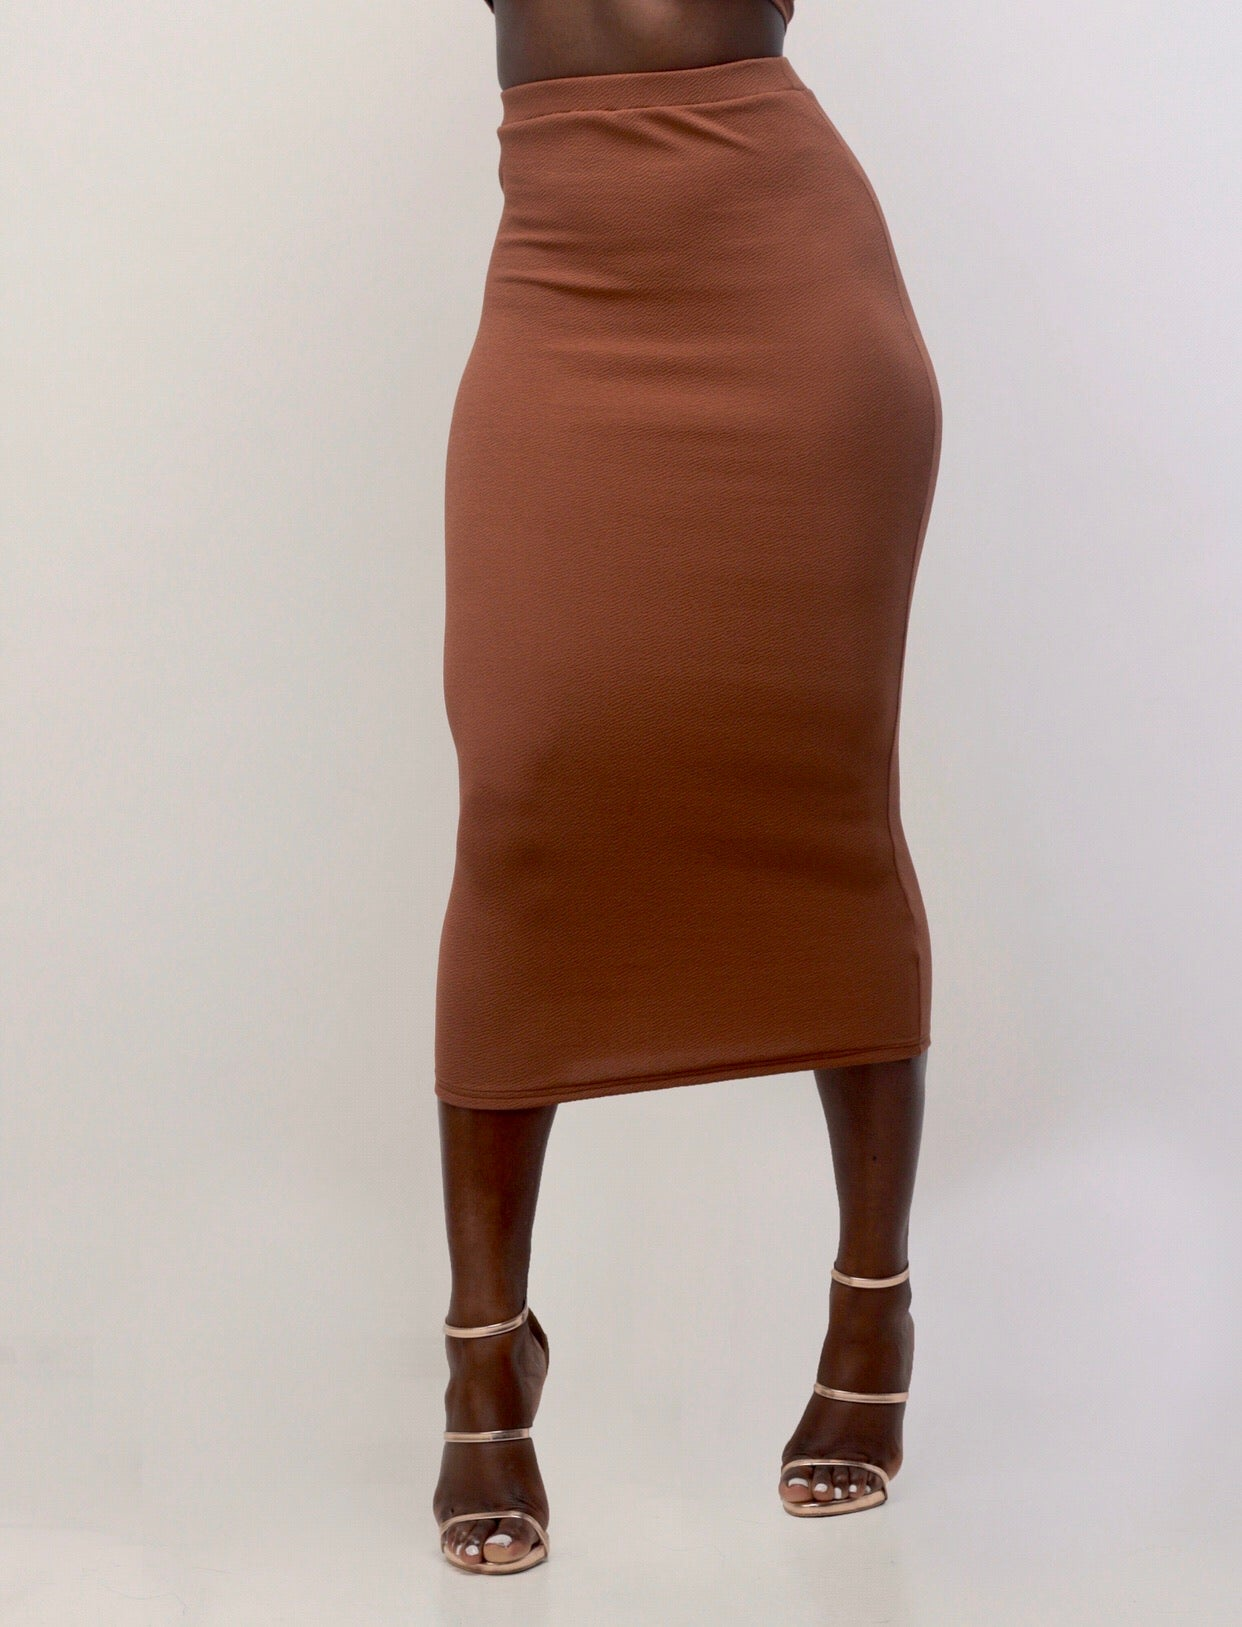 Draya Midi Skirt In Ebony - Sincerely Nude